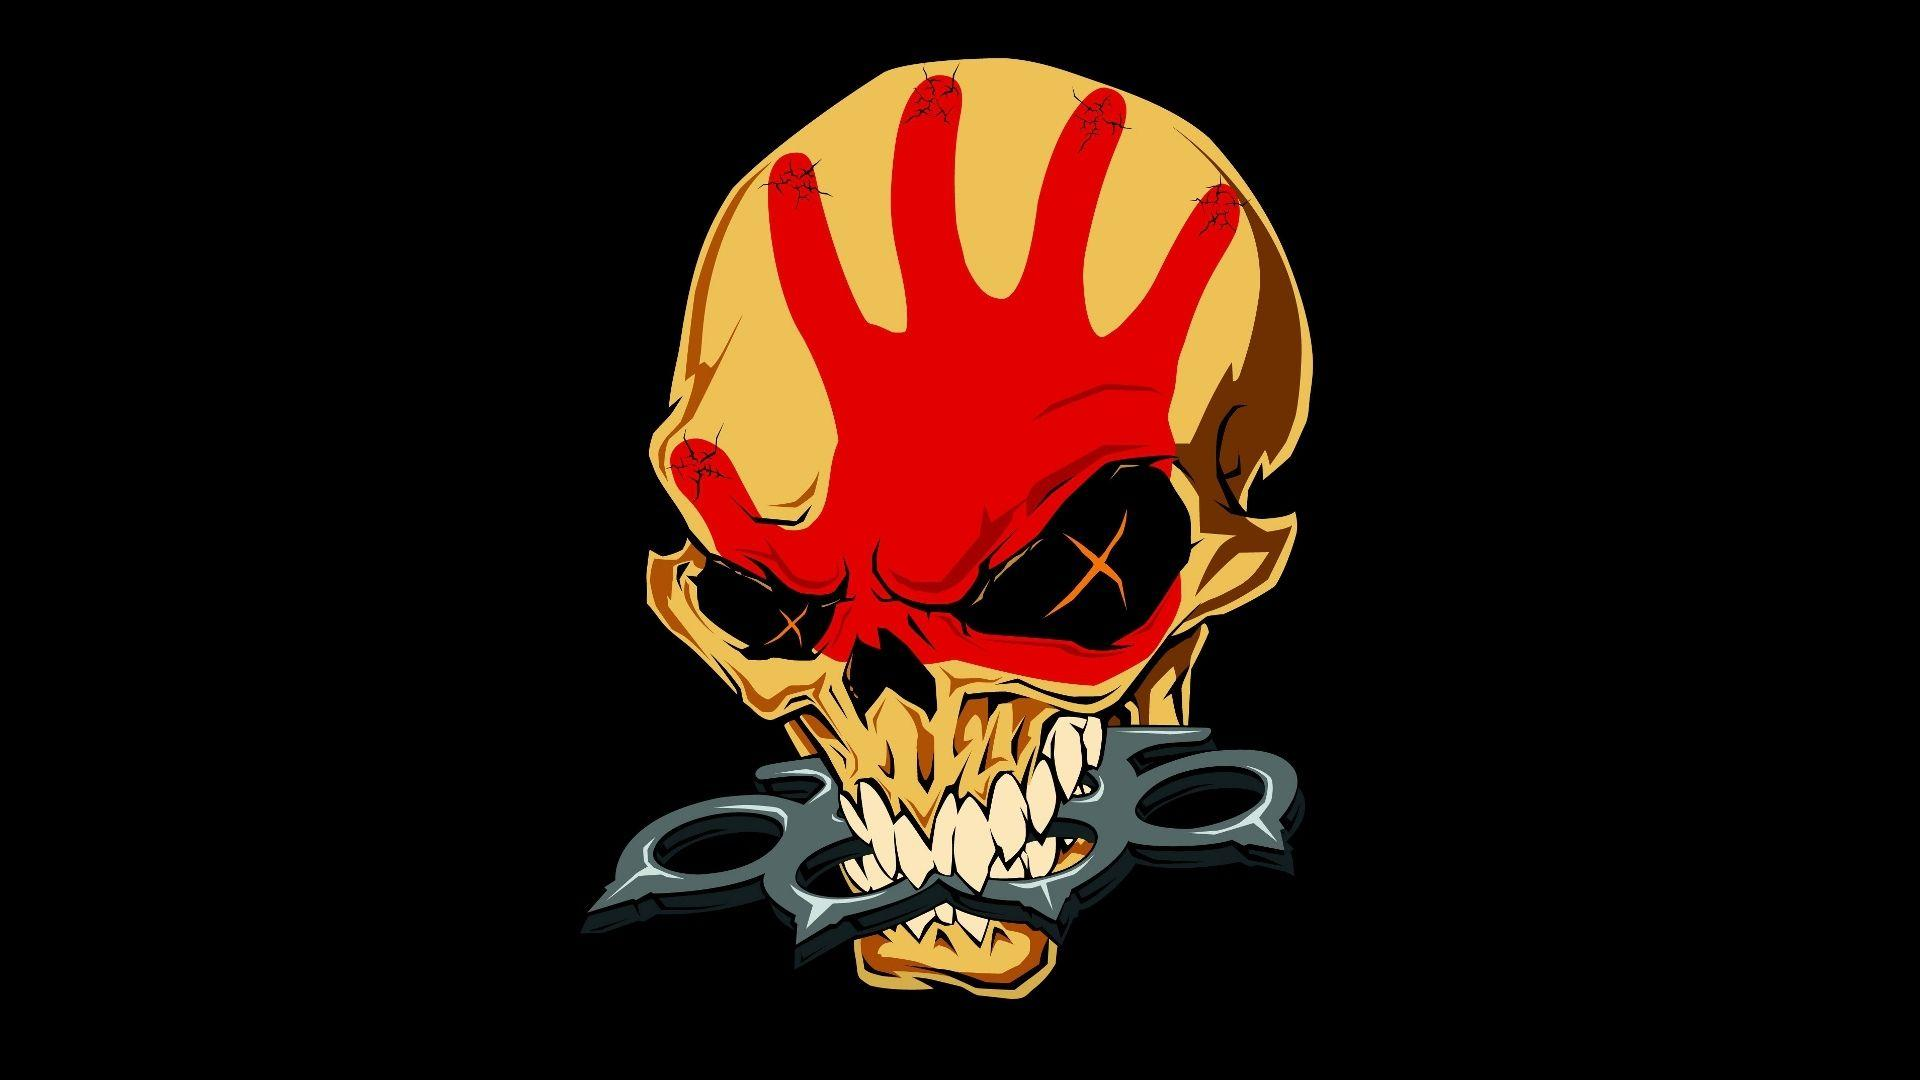 Five Finger Death Punch Wallpapers Wallpaper Cave